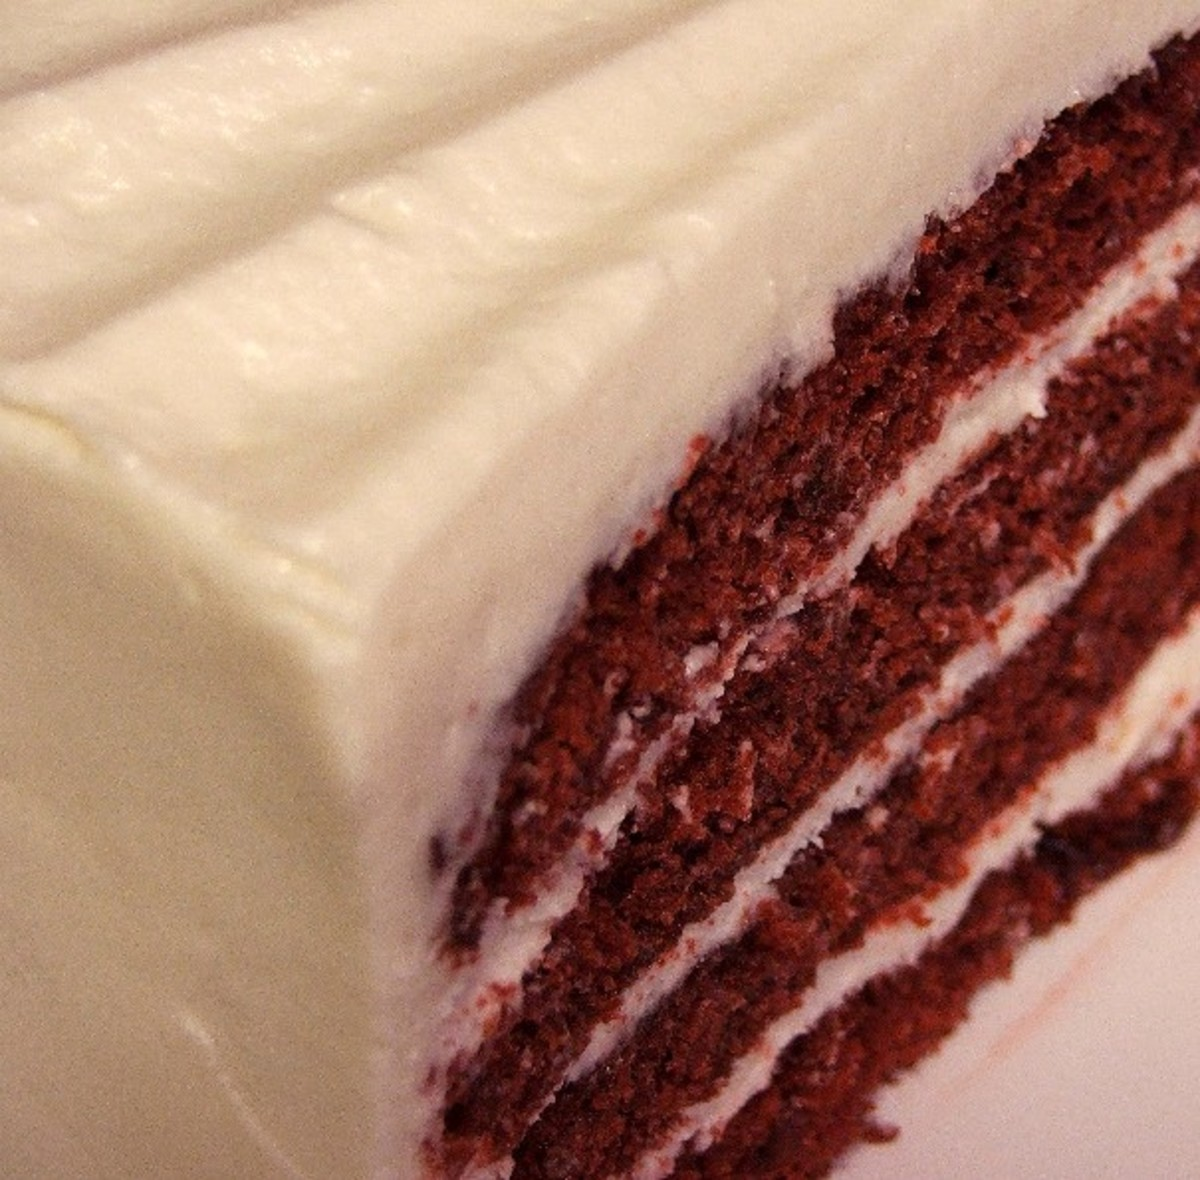 There's nothing quite like the striking colors of a Classic Red Velvet Cake with Cream Cheese Frosting. Traditional at Christmas or Valentine's, it's a family favorite at any time of the year.